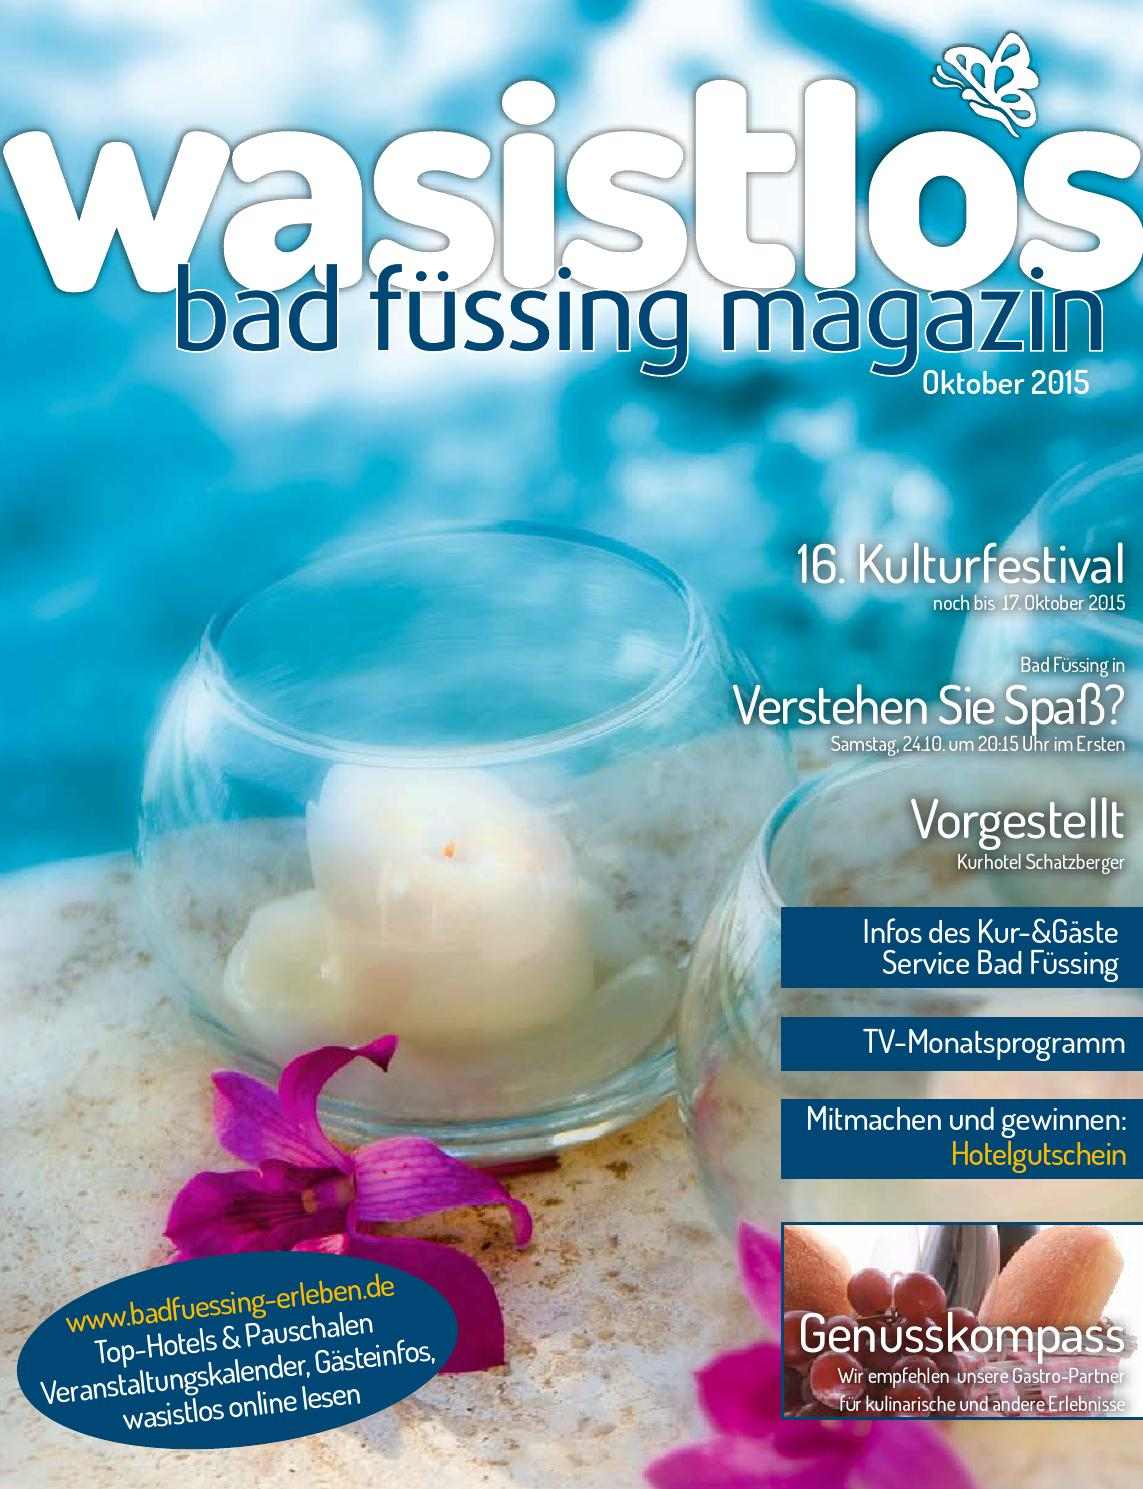 Küchenartikel Erste Wohnung Wasistlos Bad Füssing Magazin Oktober 2015 By Remark Marketing